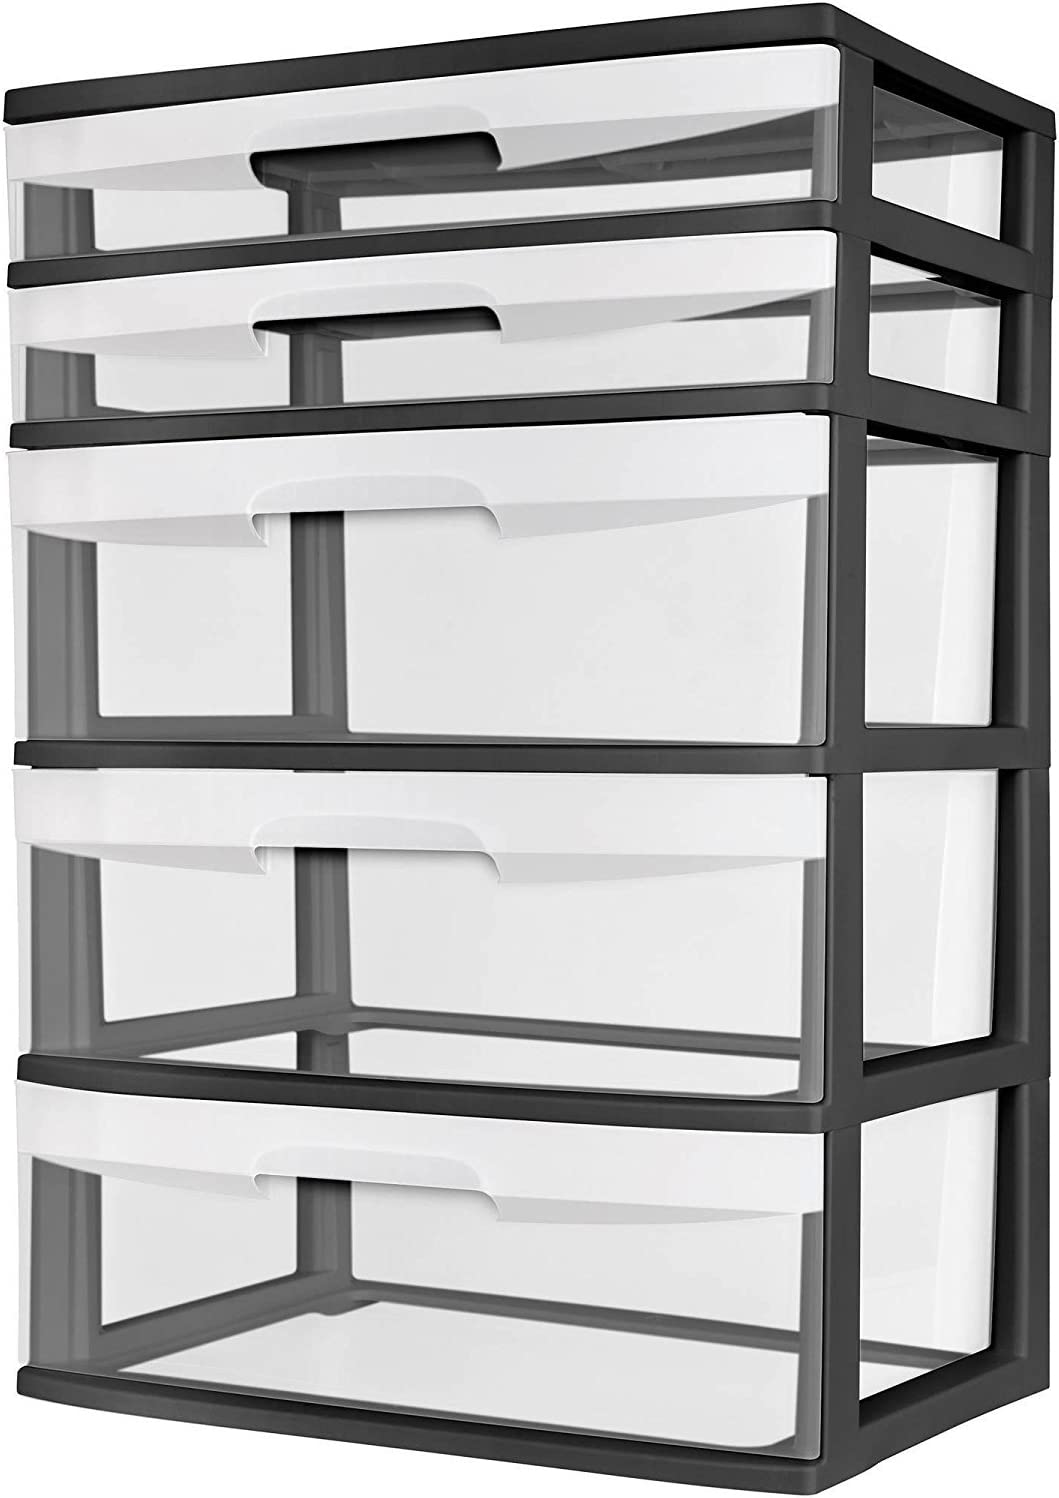 Sterilite 5 Drawer Wide Tower Black Frame Storage Organizer Cabinet Furniture Pack New Dorm Organization Garage Bedroom Room Clear Drawers Heavy-duty Plastic Storage Drawers